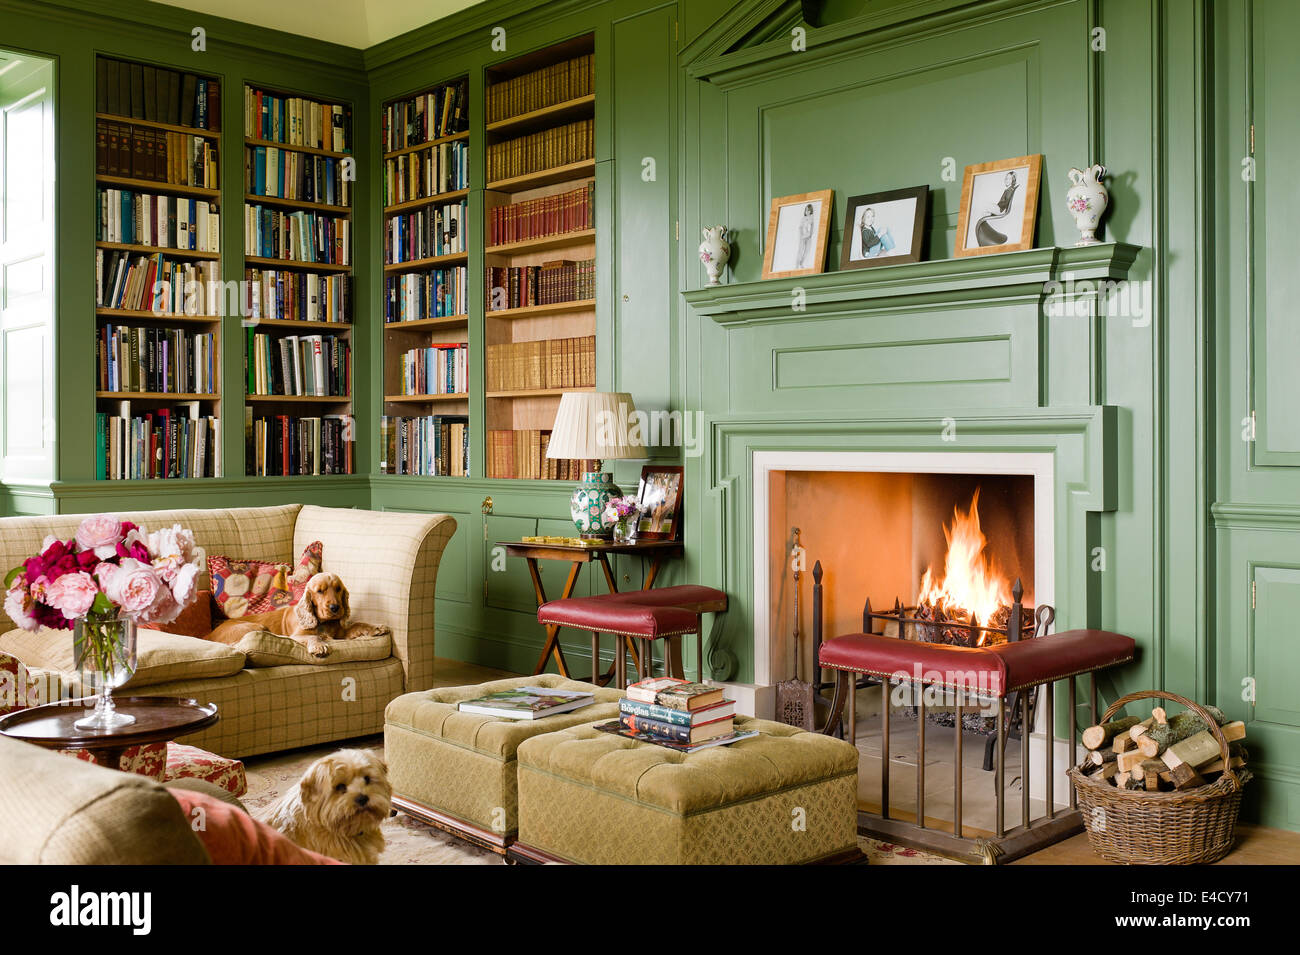 Fireplace With Fender In Cosy Library Painted In Calke